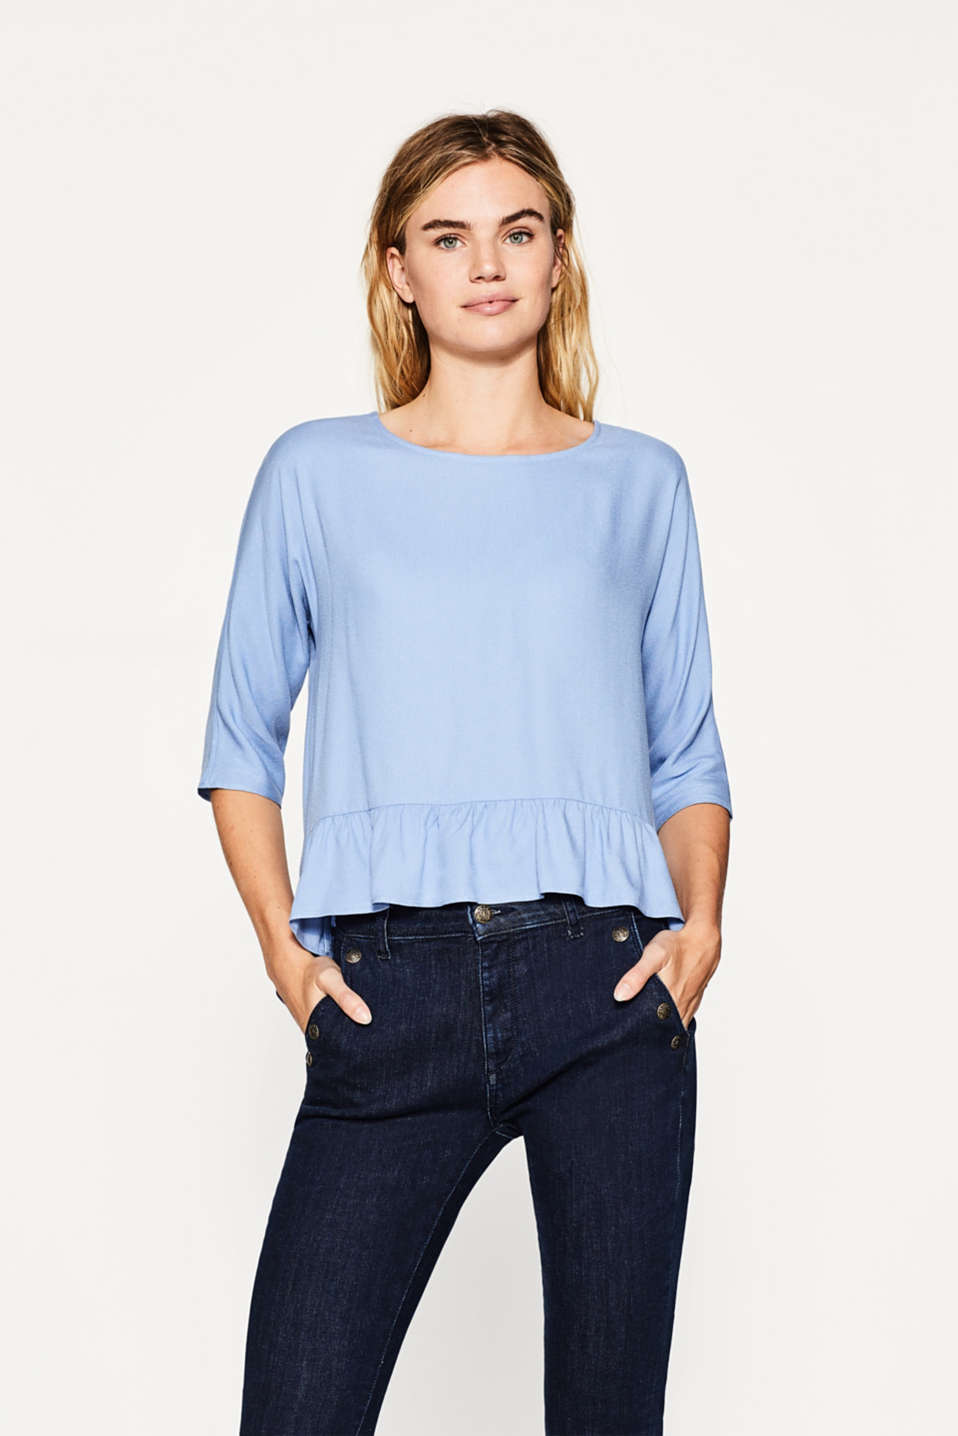 Esprit - Flowing boxy blouse with a peplum